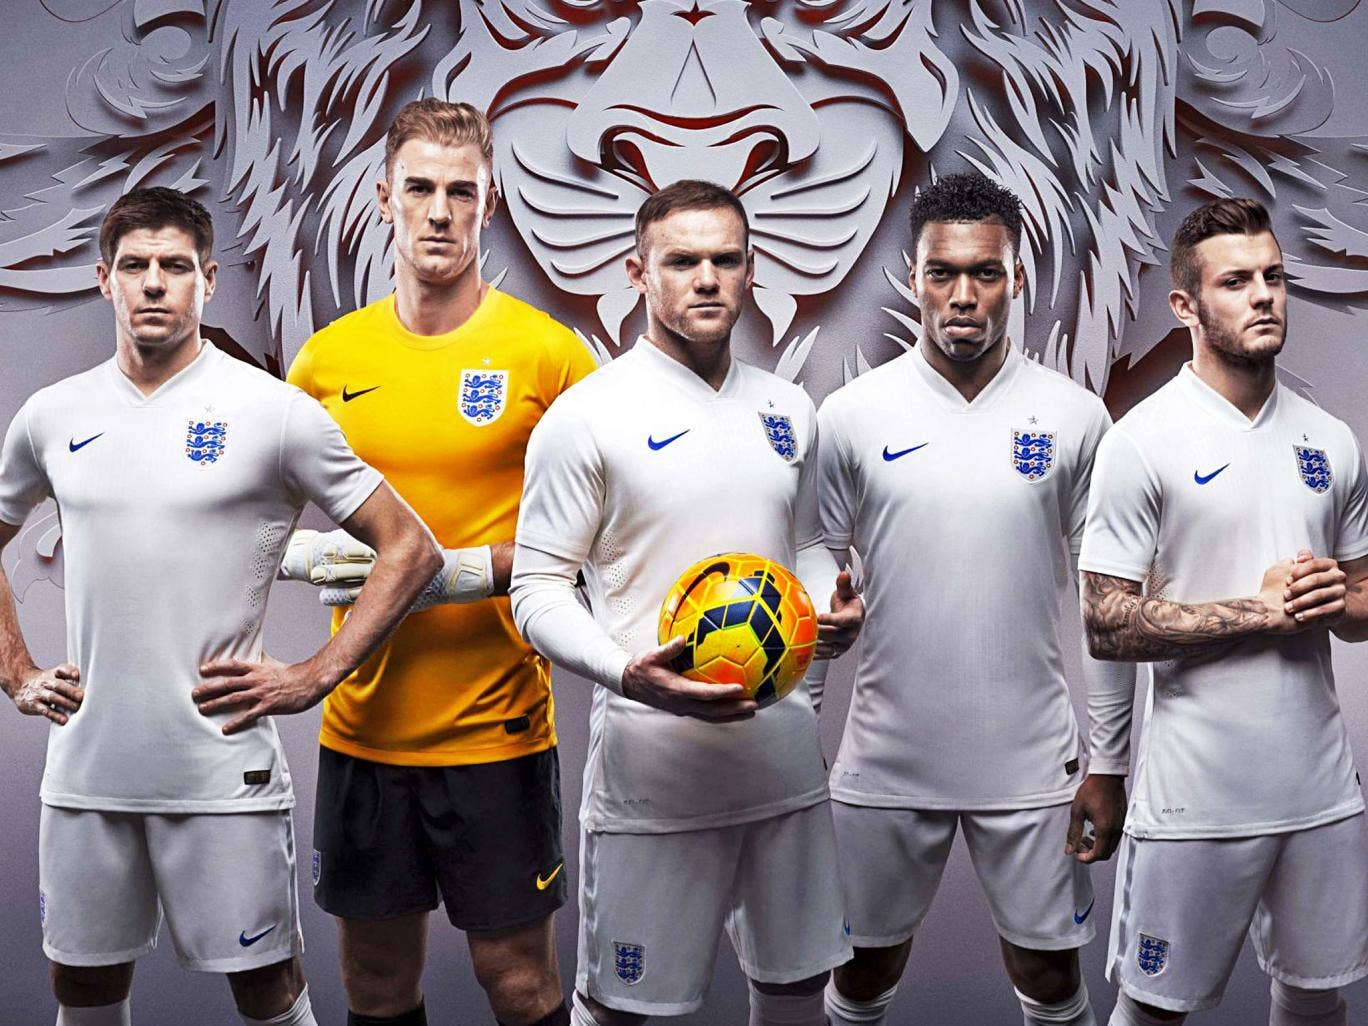 Five lions: England stars (from left) Steven Gerrard, Joe Hart, Wayne Rooney, Daniel Sturridge and Jack Wilshere show off the new Nike shirt for this summer's World Cup